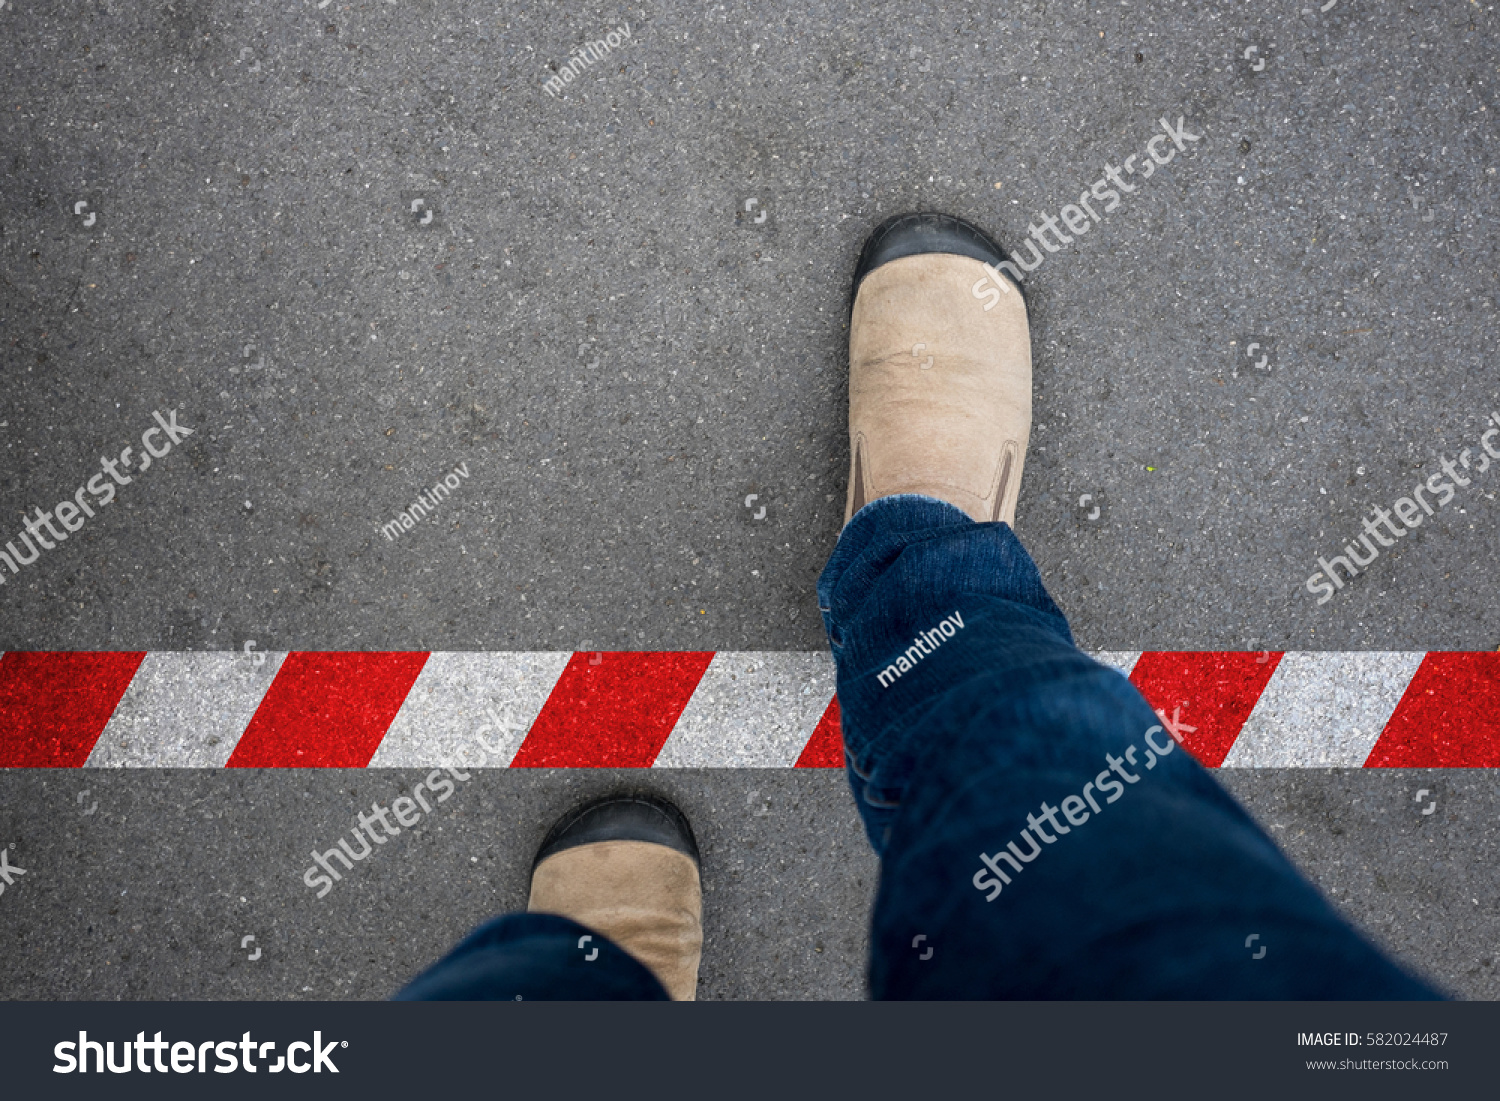 One walking across red and white line to prohibited area. Breaking the rule beyond the limit. #582024487